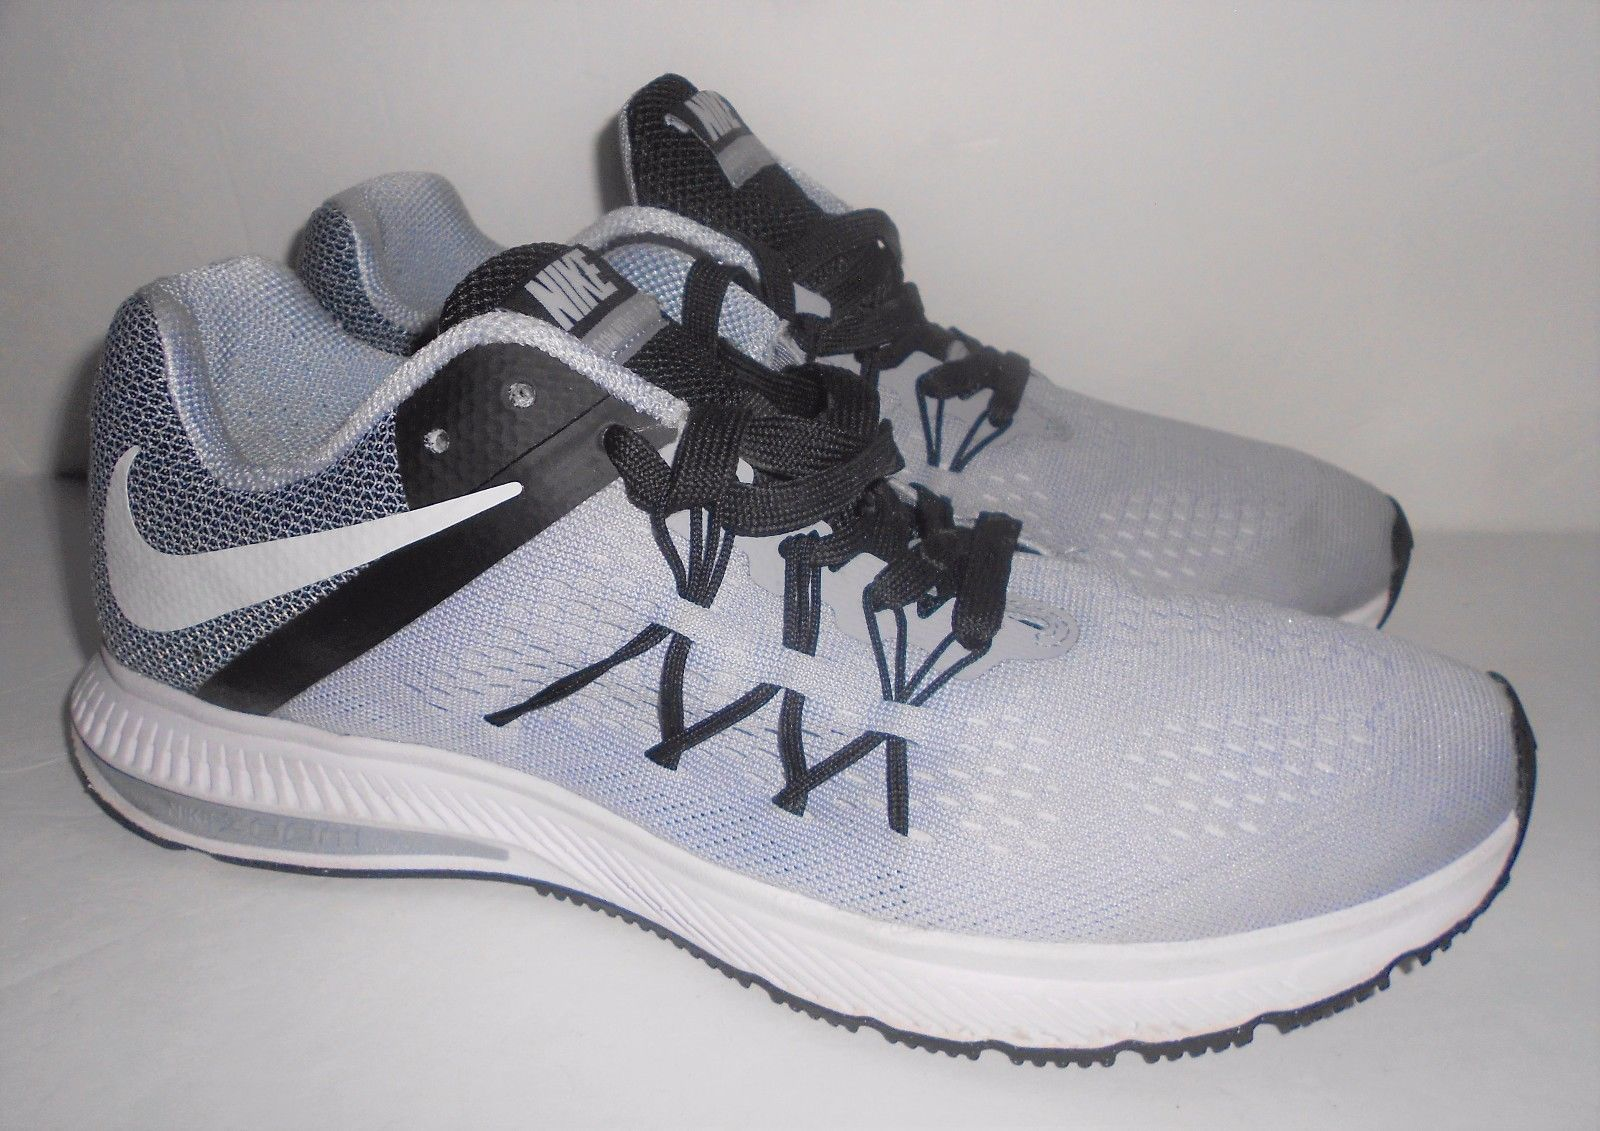 quality design 9823e 3a6a7 NIKE ZOOM WINFLO 3 mens running shoes sz 9 SNEAKERS GREY ...